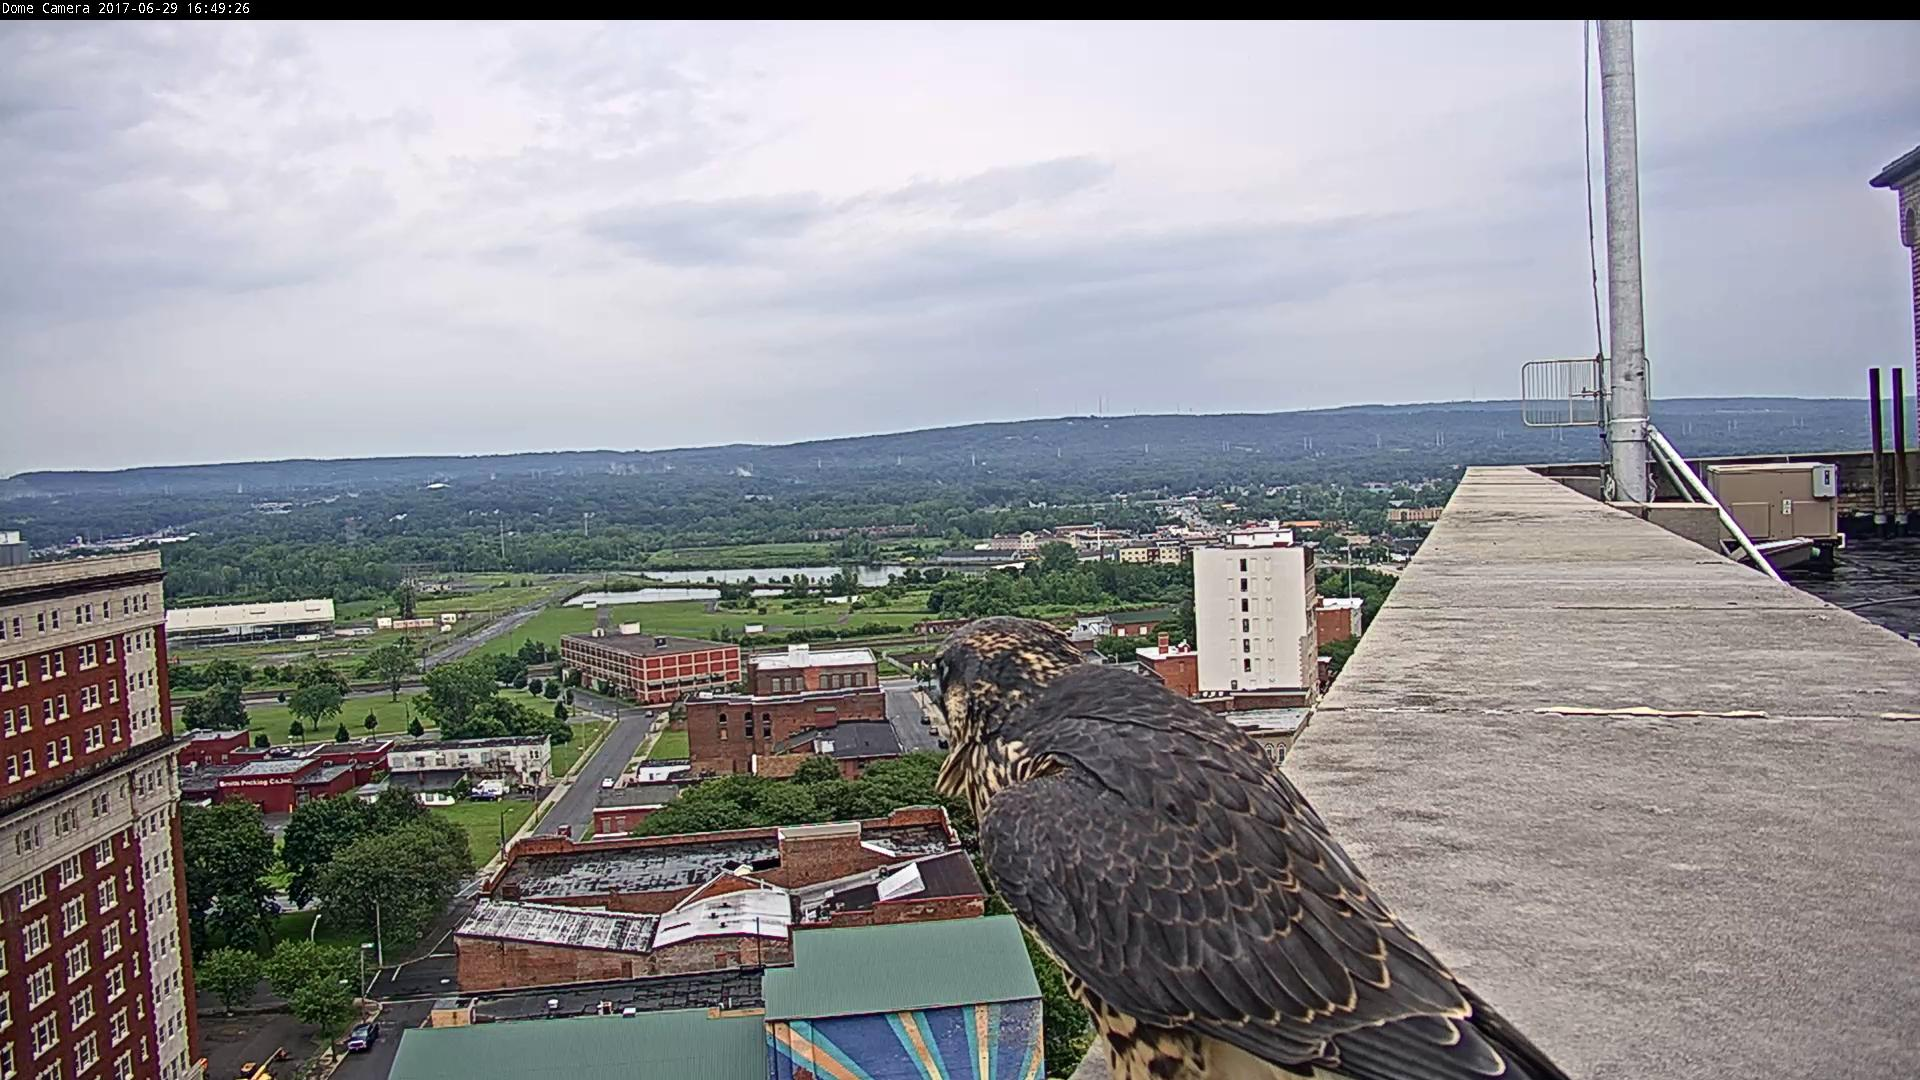 We love it when they perch near our PTZ camera